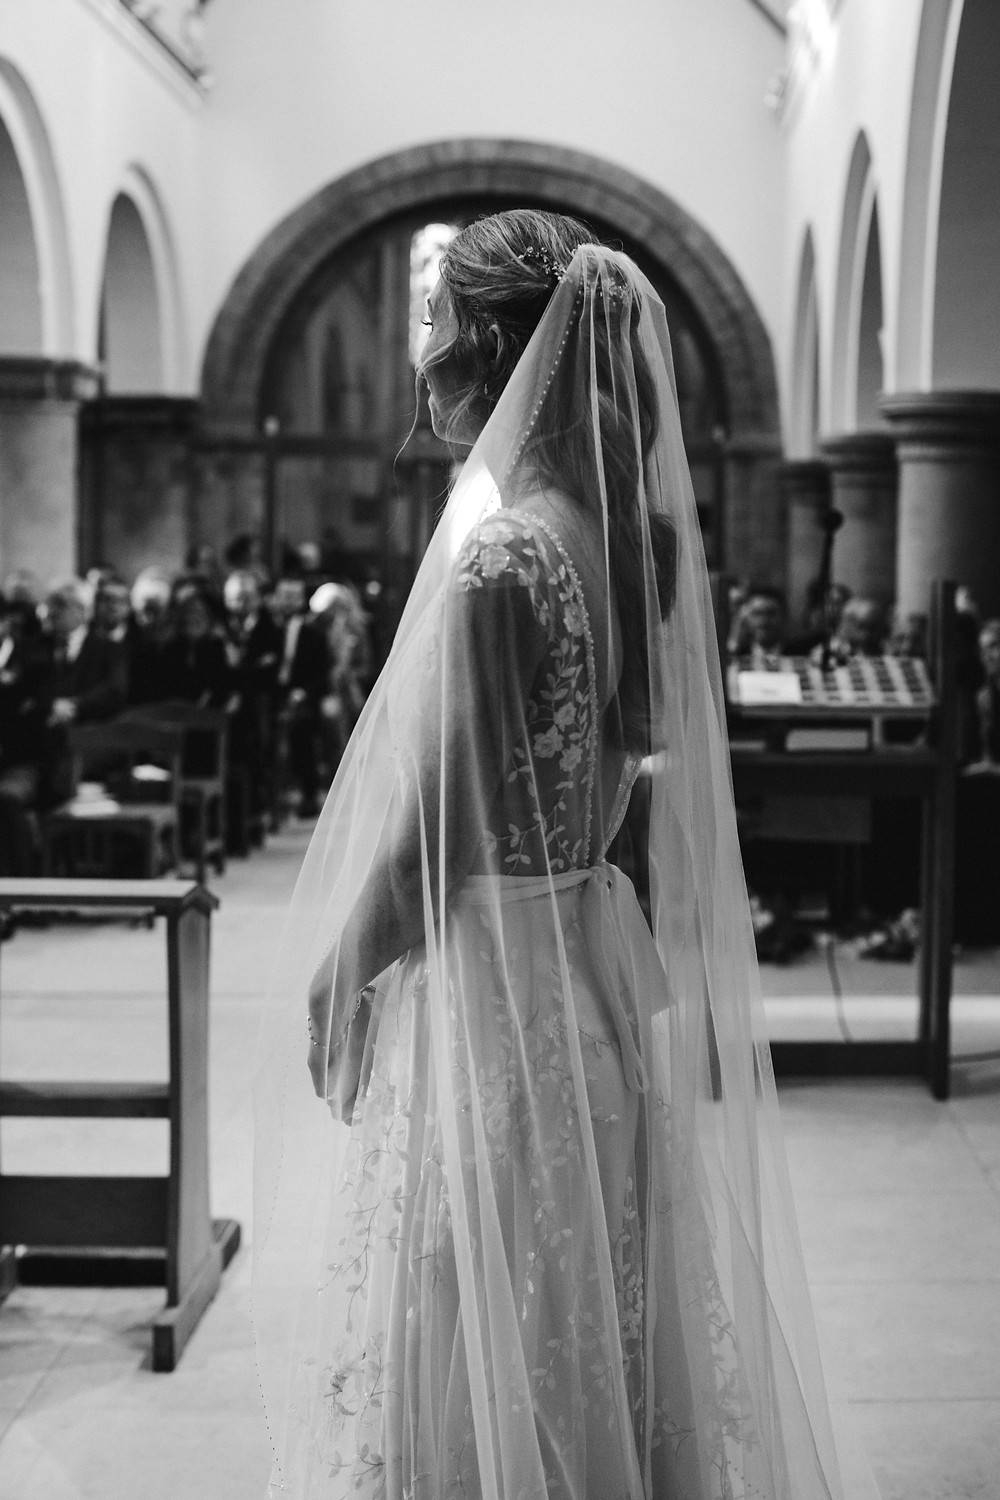 Bride in stunning lace dress and veil